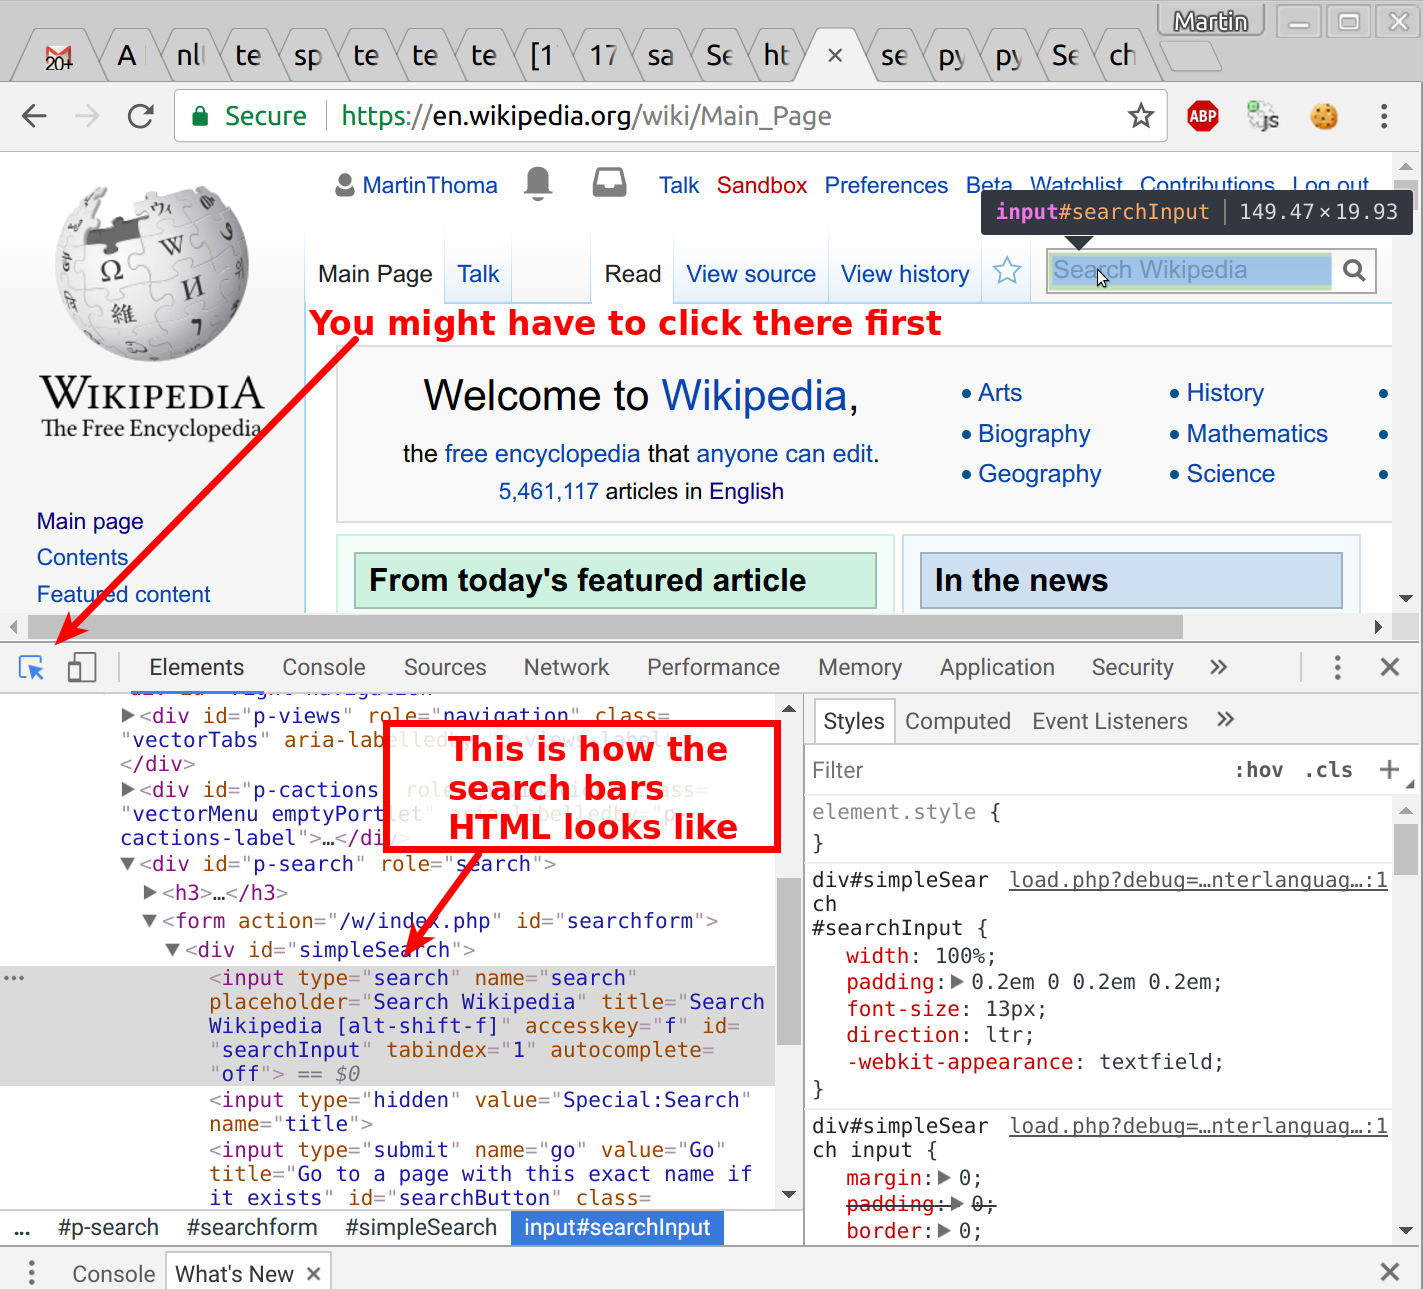 The inspection of the search bar with the Chrome Developer Tools reveals that it has the id 'searchInput'